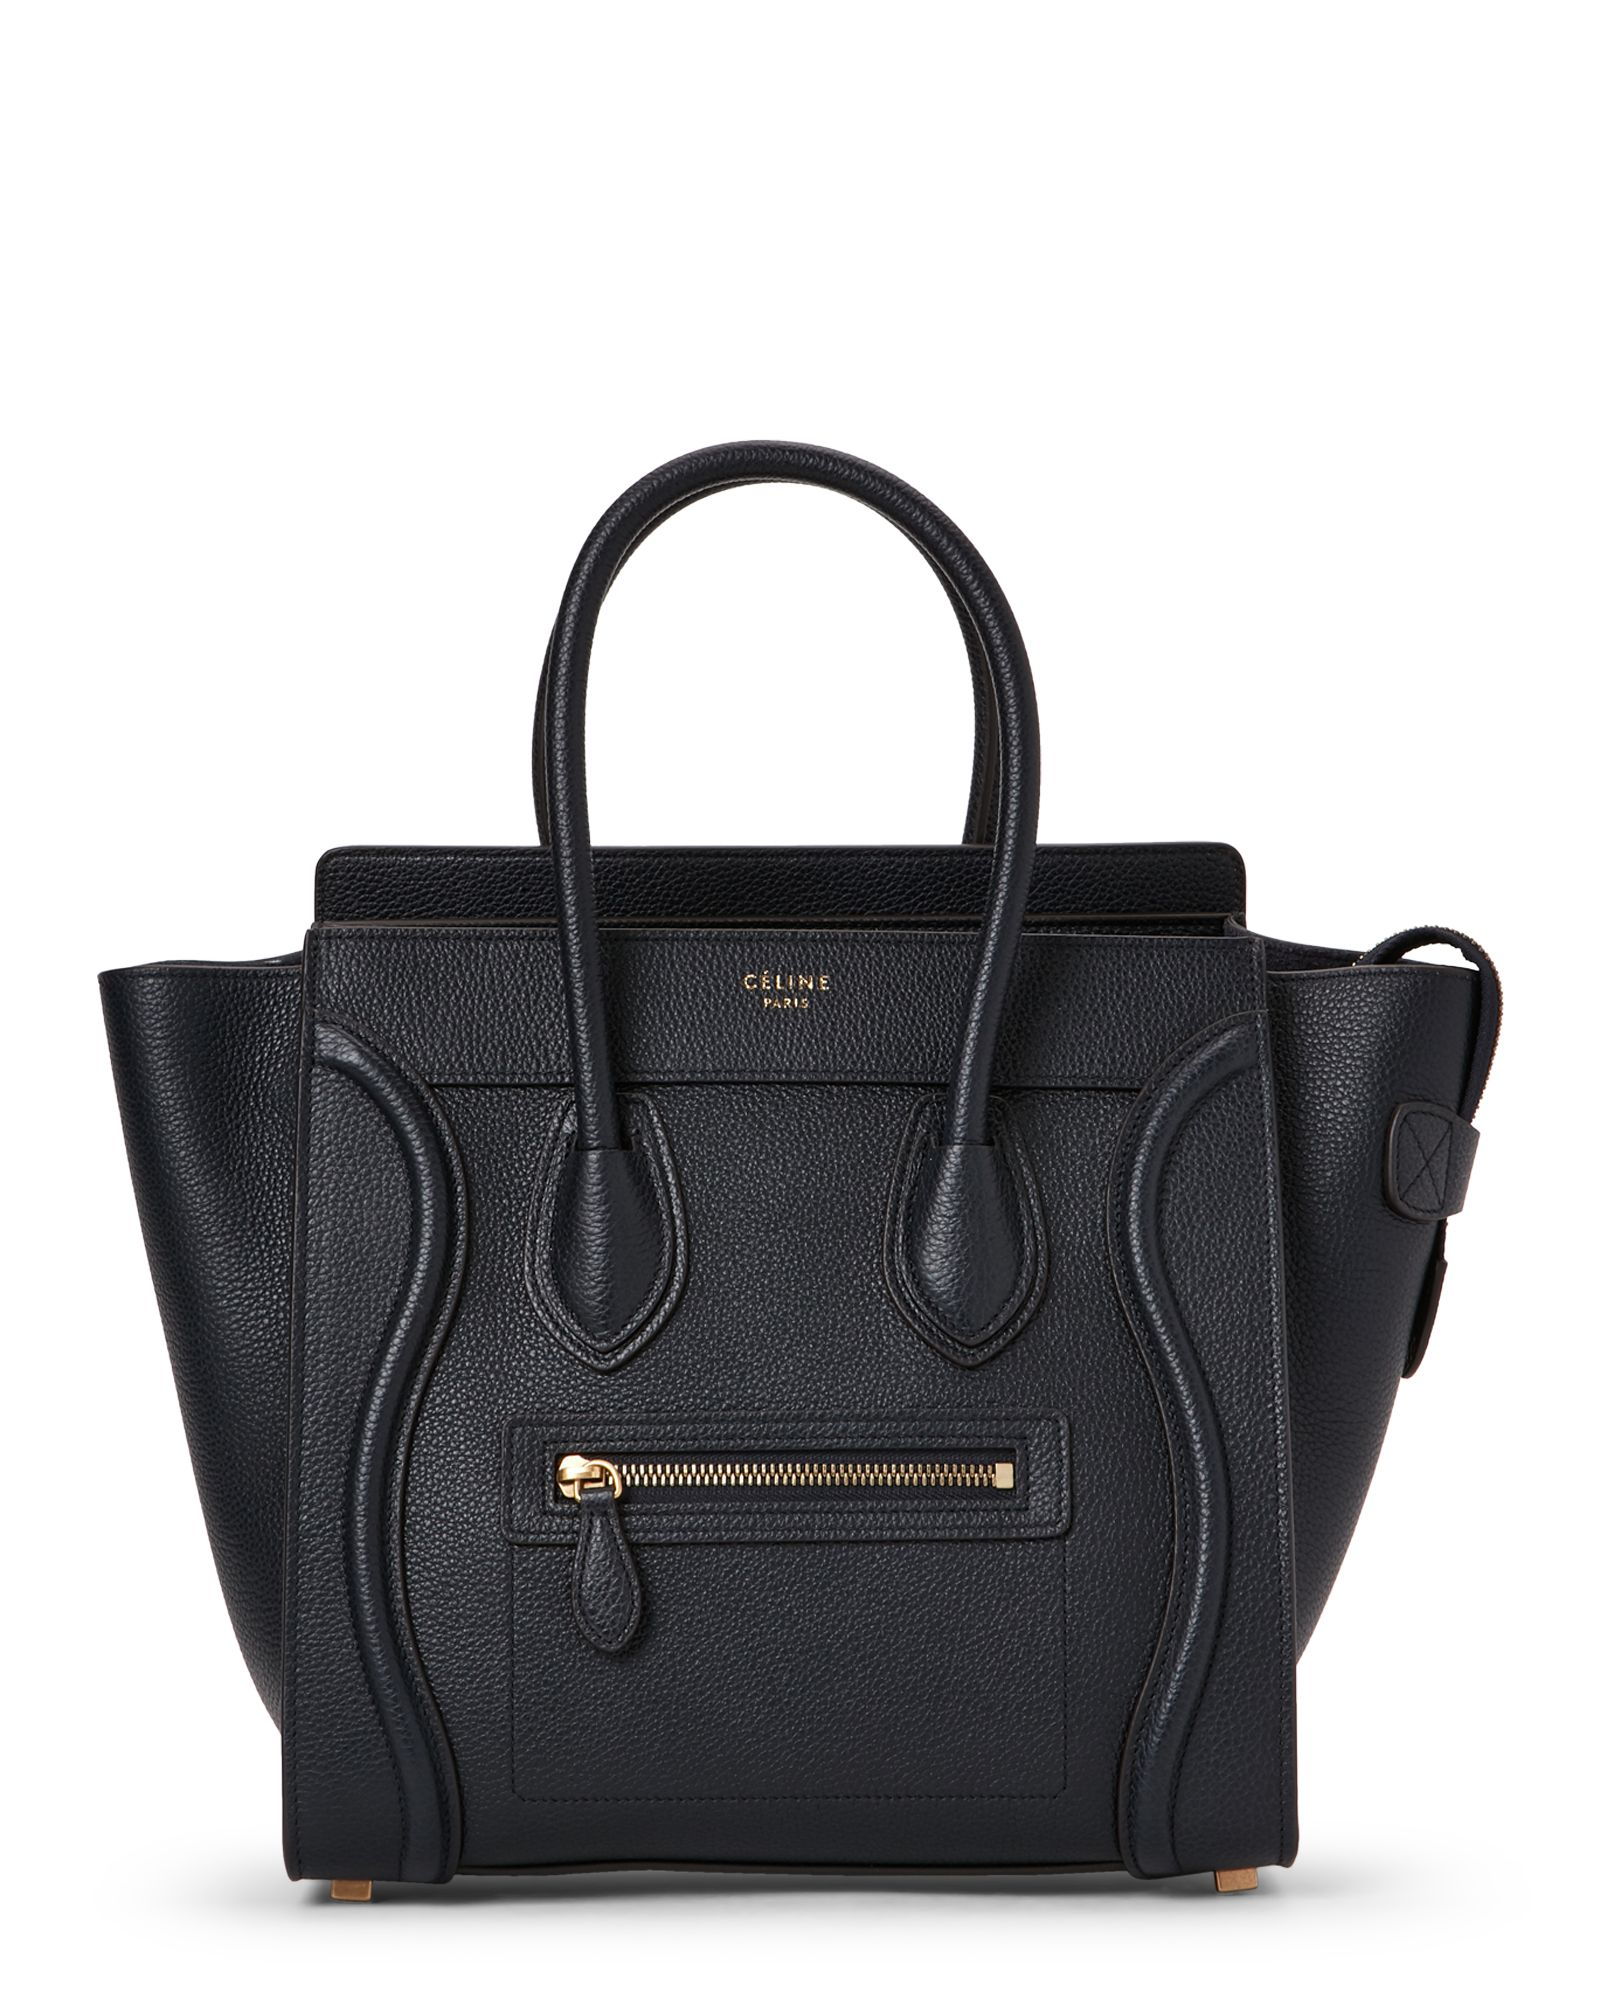 548eaca5a6 Céline Midnight Micro Luggage Tote